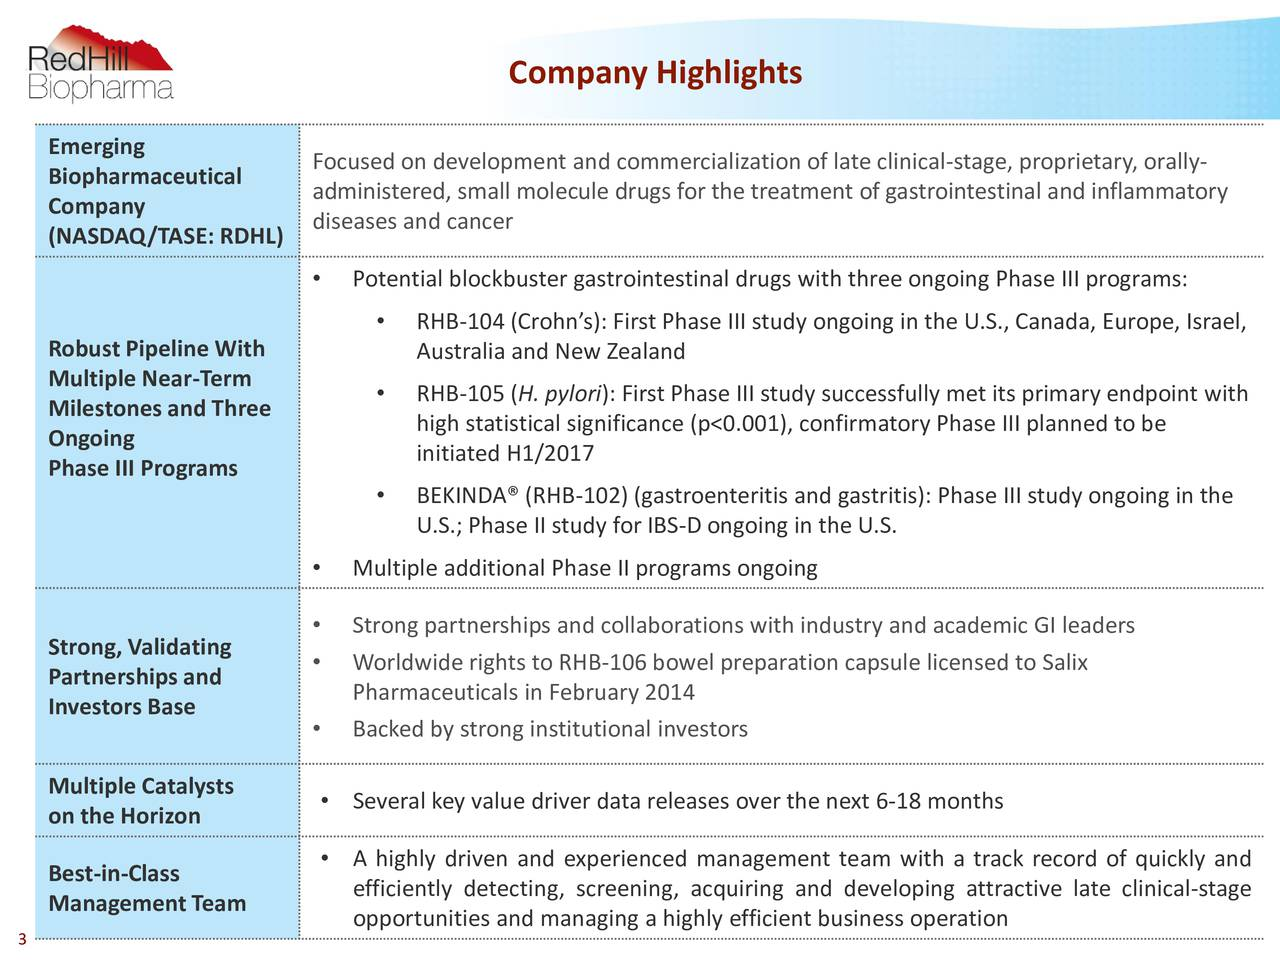 Emerging Biopharmaceutical Focused on development and commercialization of late clinical-stage, proprietary, orally- Company administered, small molecule drugs for the treatment of gastrointestinal and inflammatory diseases and cancer (NASDAQ/TASE: RDHL) Potential blockbuster gastrointestinal drugs with three ongoing Phase III programs: RHB-104 (Crohns): First Phase III study ongoing in the U.S., Canada, Europe, Israel, RobustPipeline With Australia and New Zealand Multiple Near-Term Milestonesand Three  RHB-105 (H. pylori): First Phase III study successfully met its primary endpoint with high statistical significance (p<0.001), confirmatory Phase III planned to be Ongoing initiated H1/2017 Phase III Programs BEKINDA (RHB-102) (gastroenteritis and gastritis): Phase III study ongoing in the U.S.; Phase II study for IBS-D ongoing in the U.S. Multiple additional Phase II programs ongoing Strong partnerships and collaborations with industry and academic GI leaders Strong, Validating Partnershipsand  Worldwide rights to RHB-106 bowel preparation capsule licensed to Salix InvestorsBase Pharmaceuticals in February 2014 Backed by strong institutional investors Multiple Catalysts Several key value driver data releases over the next 6-18 months on the Horizon A highly driven and experienced management team with a track record of quickly and Best-in-Class efficiently detecting, screening, acquiring and developing attractive late clinical-stage ManagementTeam 3 opportunities and managing a highly efficient business operation